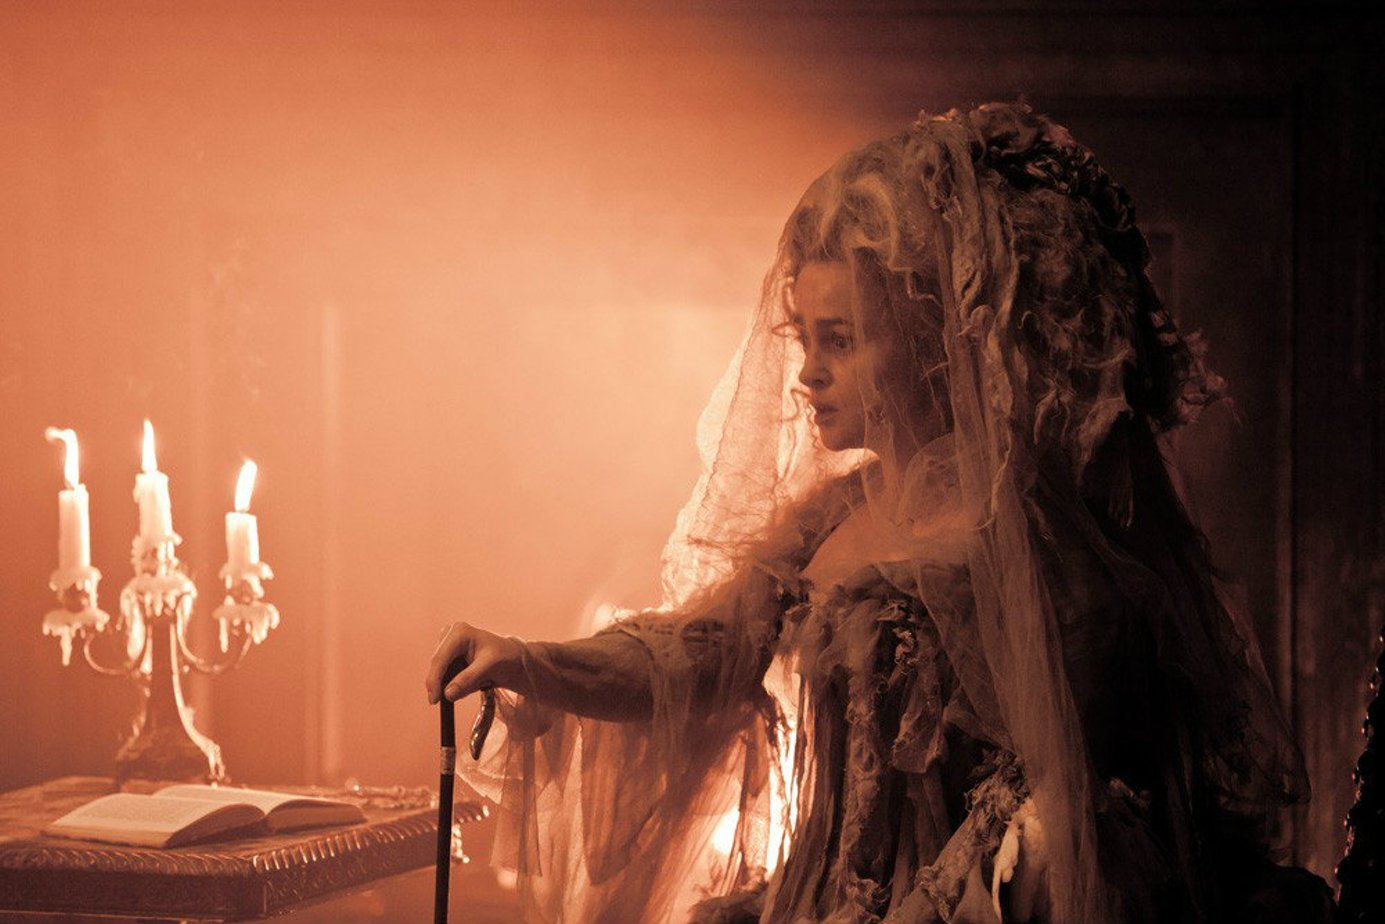 great expectations miss havisham Havisham is the astonishing prelude to charles dickens's great expectations before she became the immortal and haunting miss havisham of great expectations, she was catherine, a young woman with all of her dreams ahead of her.